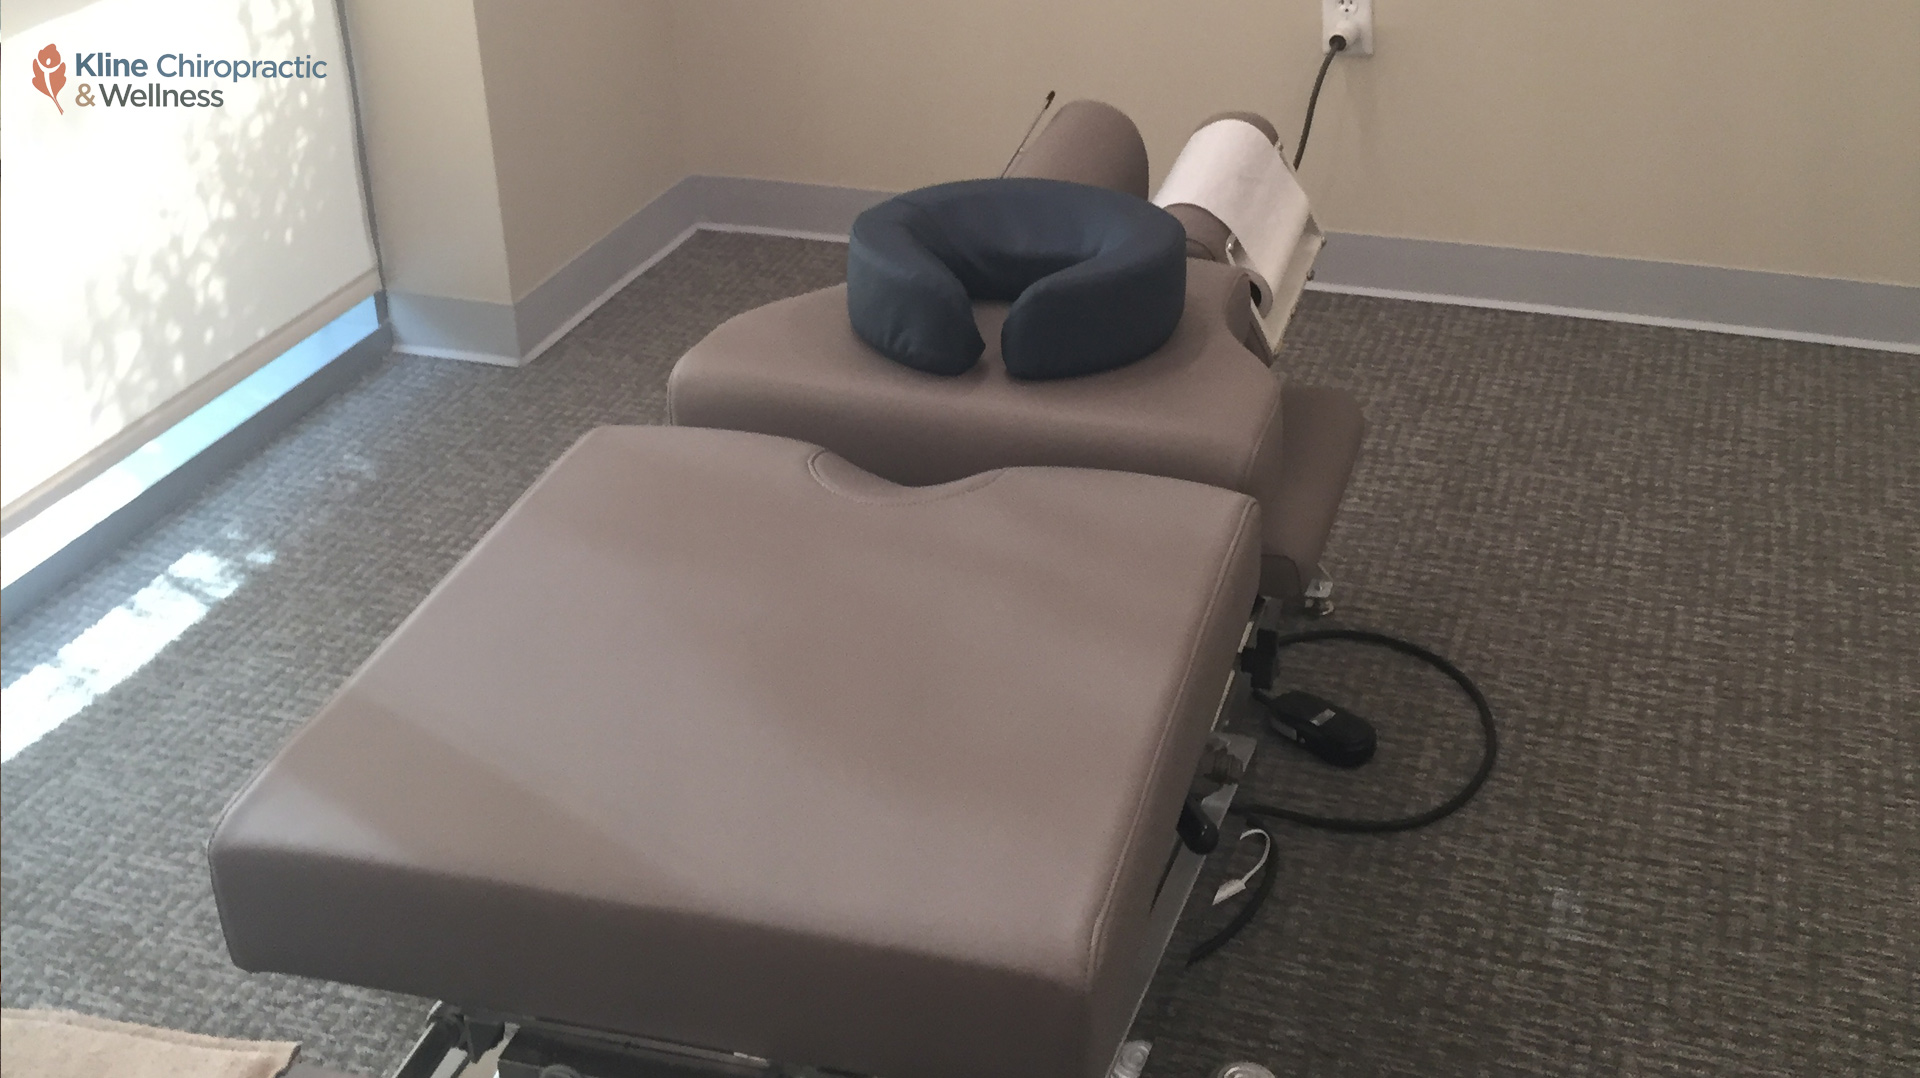 carlsbad-chiropractor-chiropractic-table